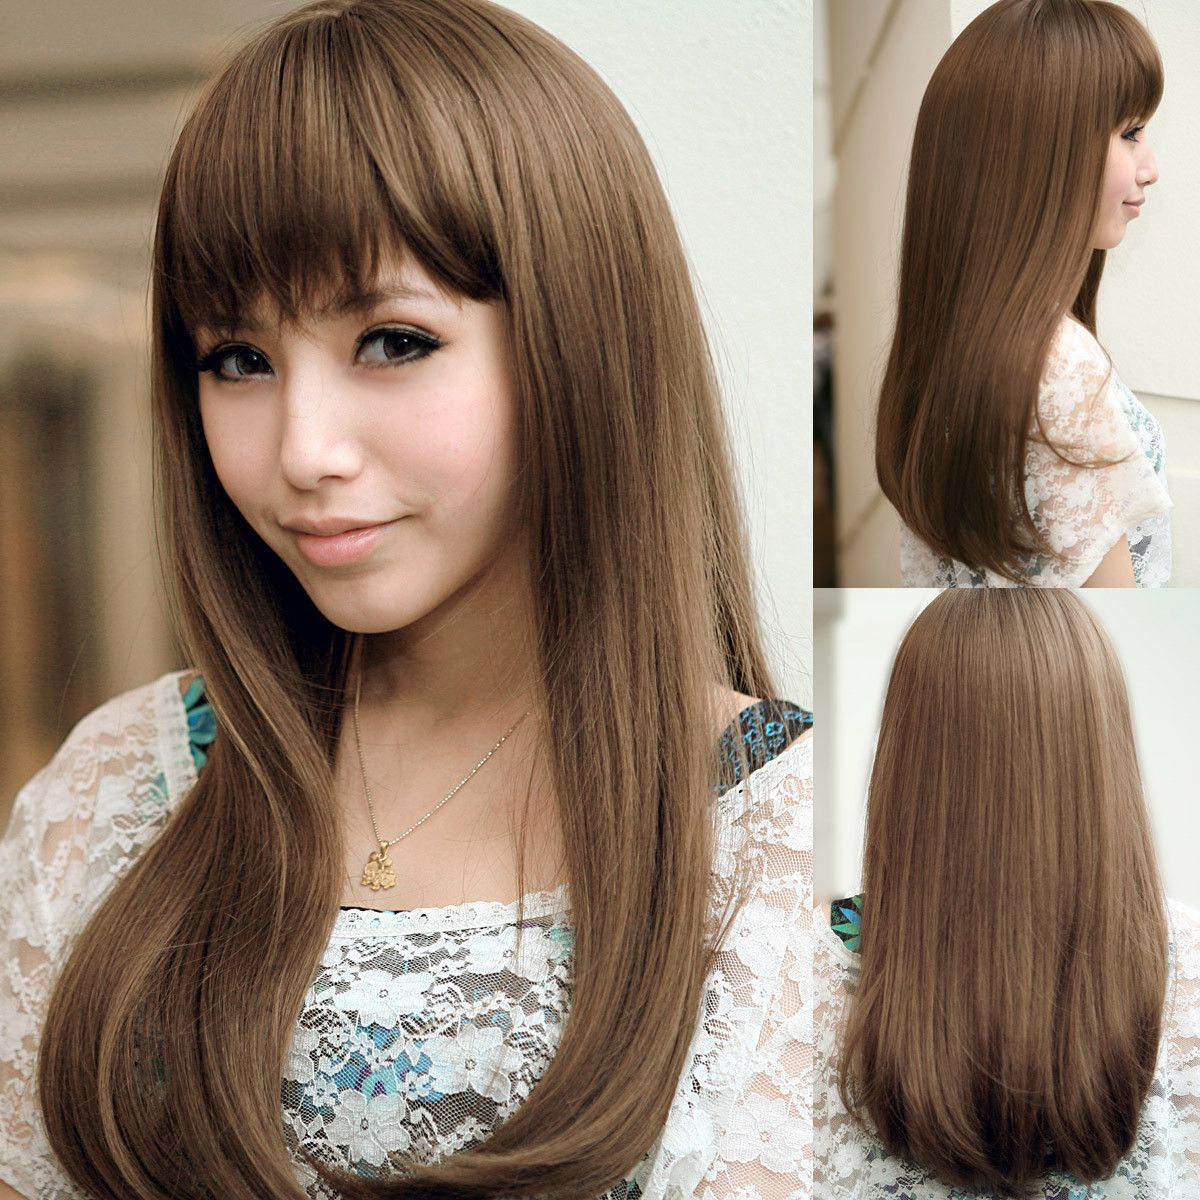 floral house girls, real new japanese hairstyle fringe fatao fluffy